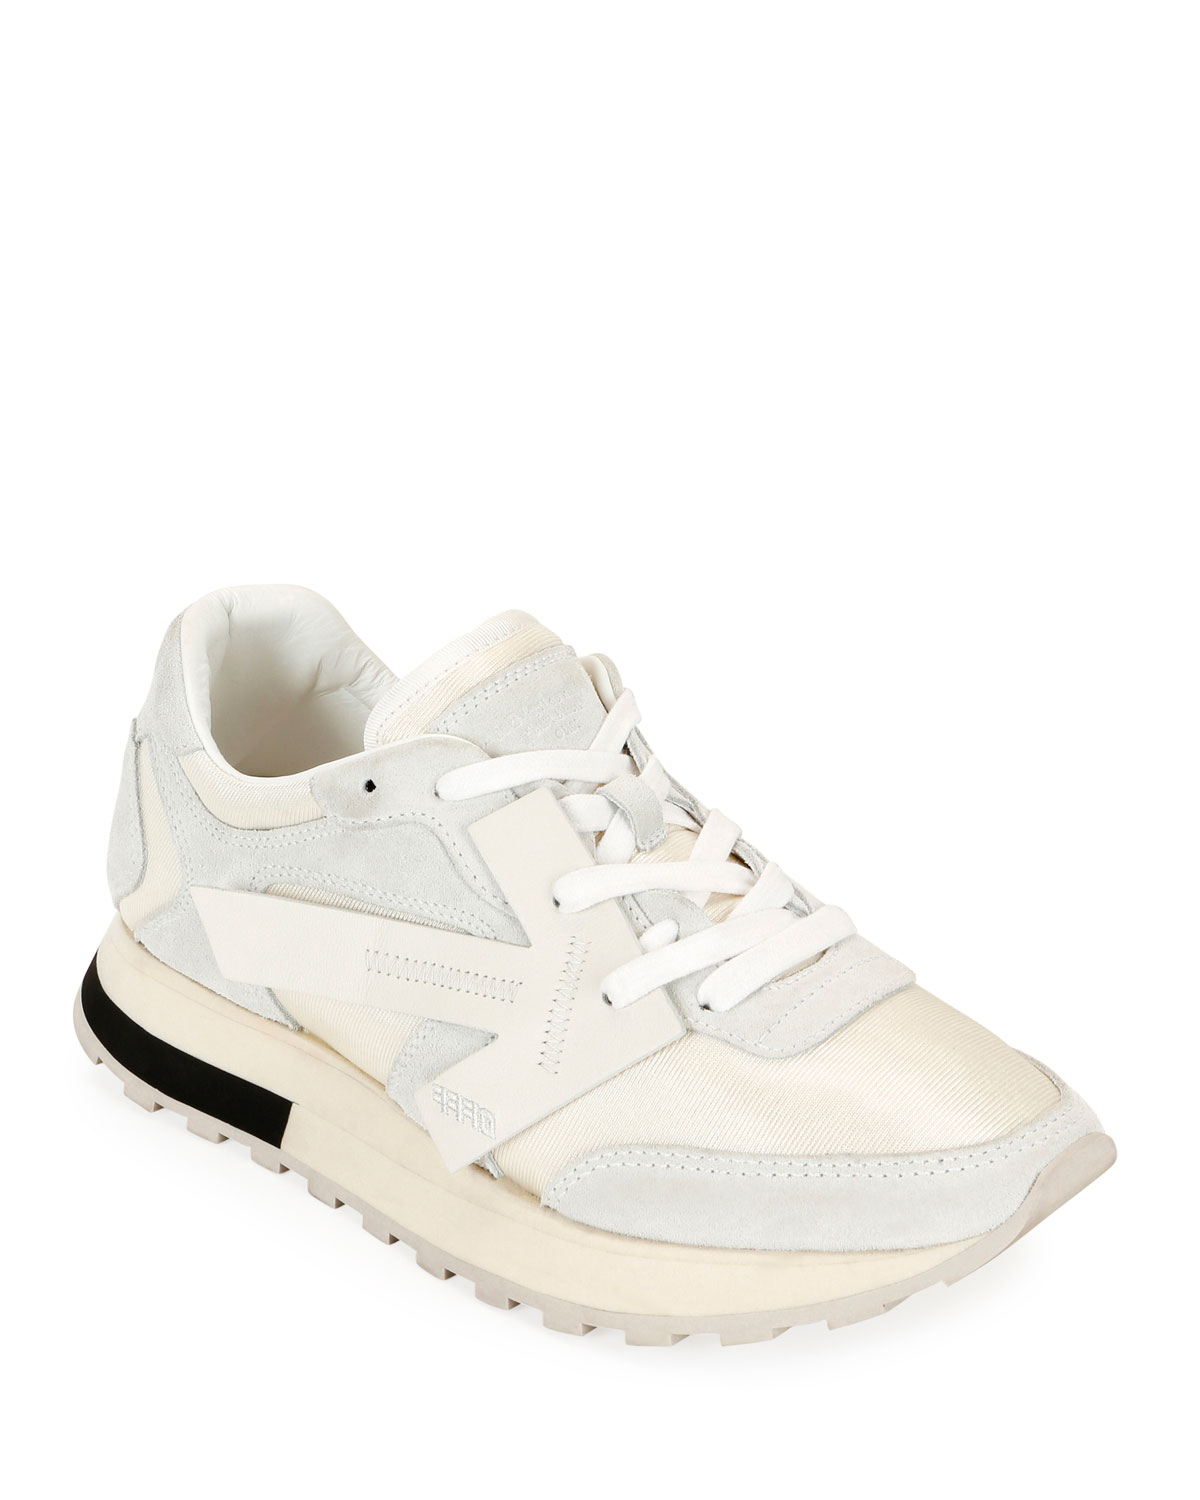 Off-White HG Runner Low-Top Suede